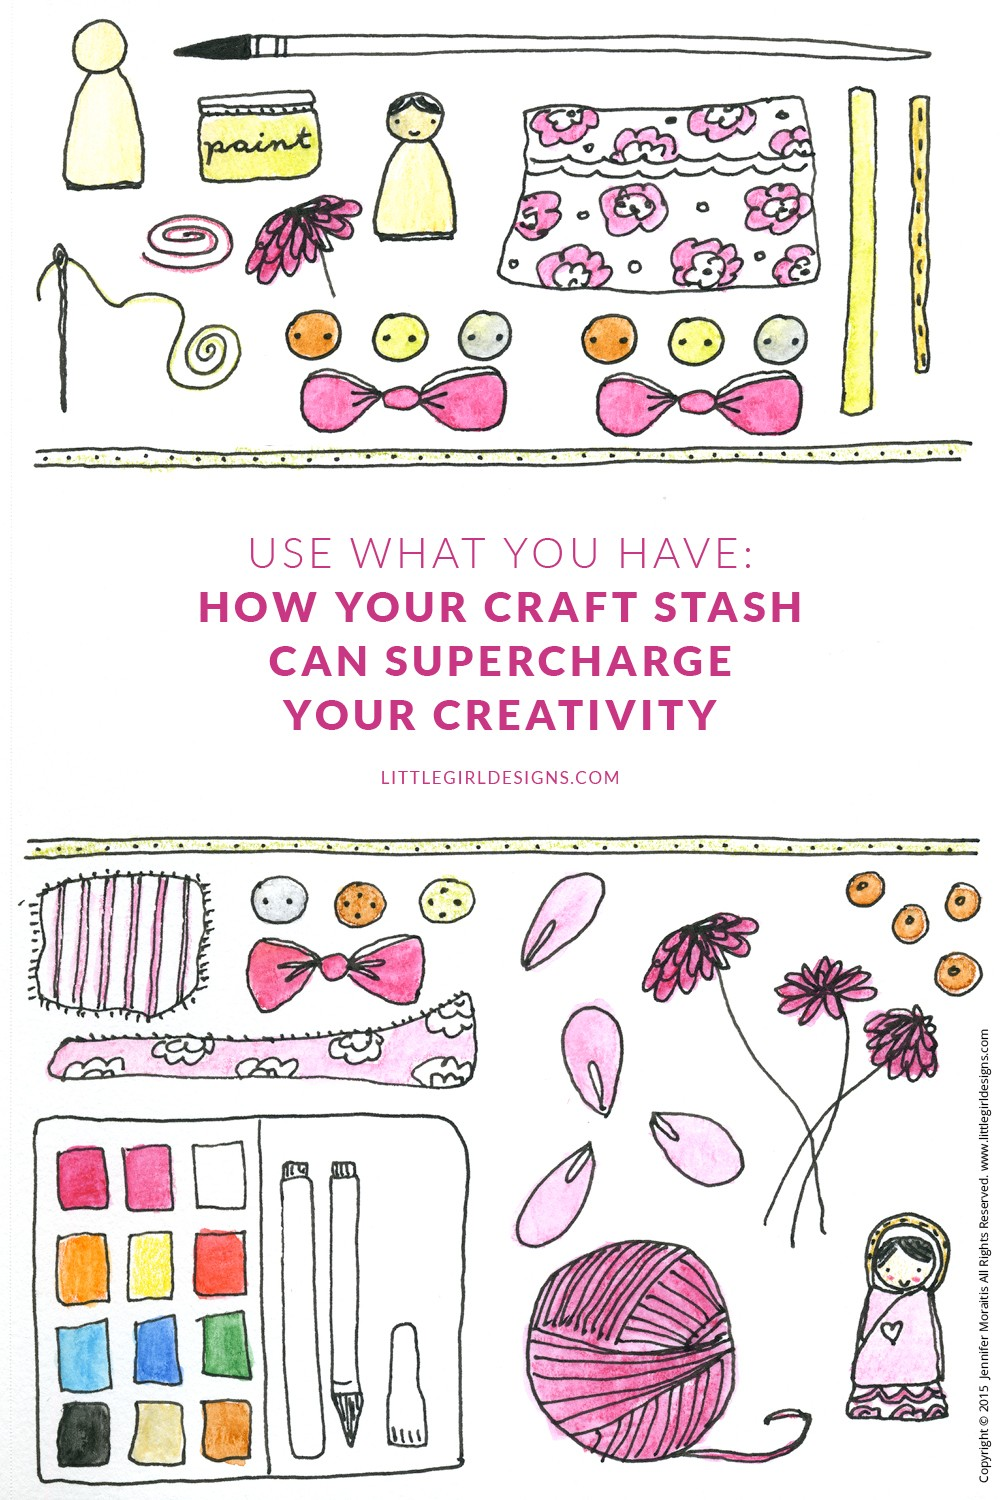 """Use What You Have: How Your Craft Stash Can Supercharge Your Creativity - You look at your craft drawers and sigh, """"What a mess!"""" or walk into your gorgeous craft room and sigh contentedly. Whatever the case, what you might not realize is you are looking at the source to some serious creativity! This is the second in a series about using what you have @littlegirldesigns.com"""